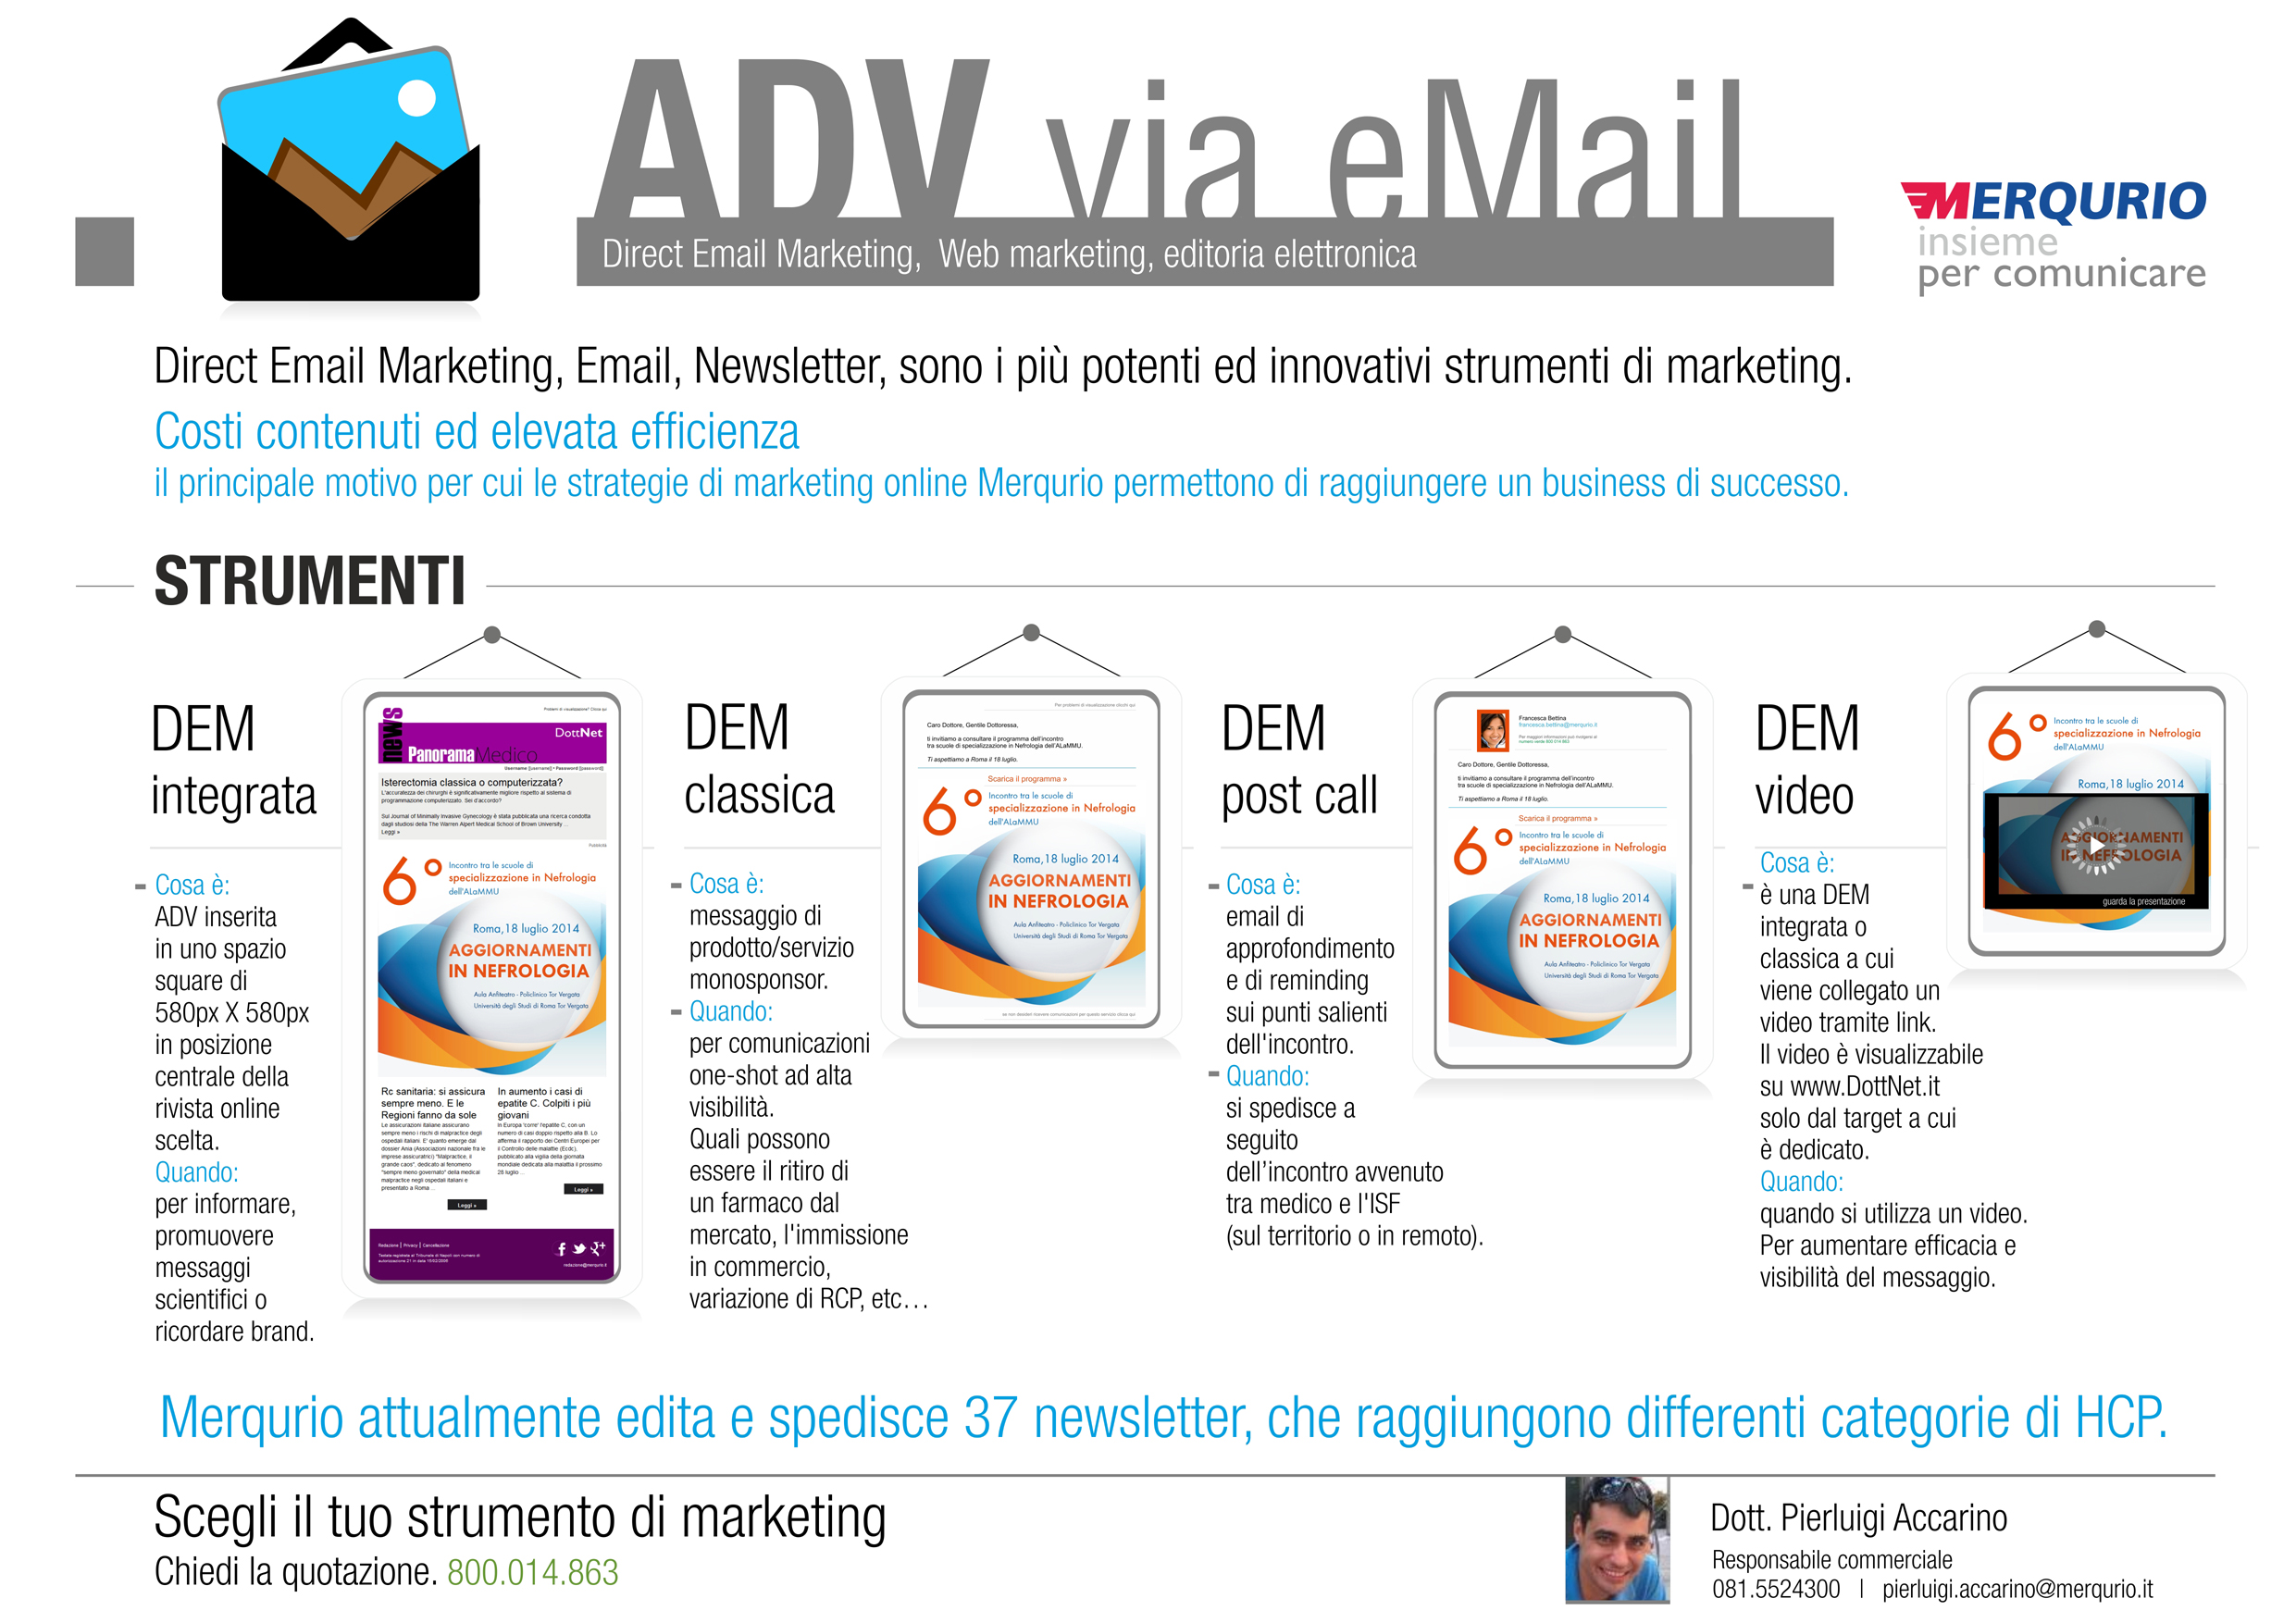 ADVviaEmail